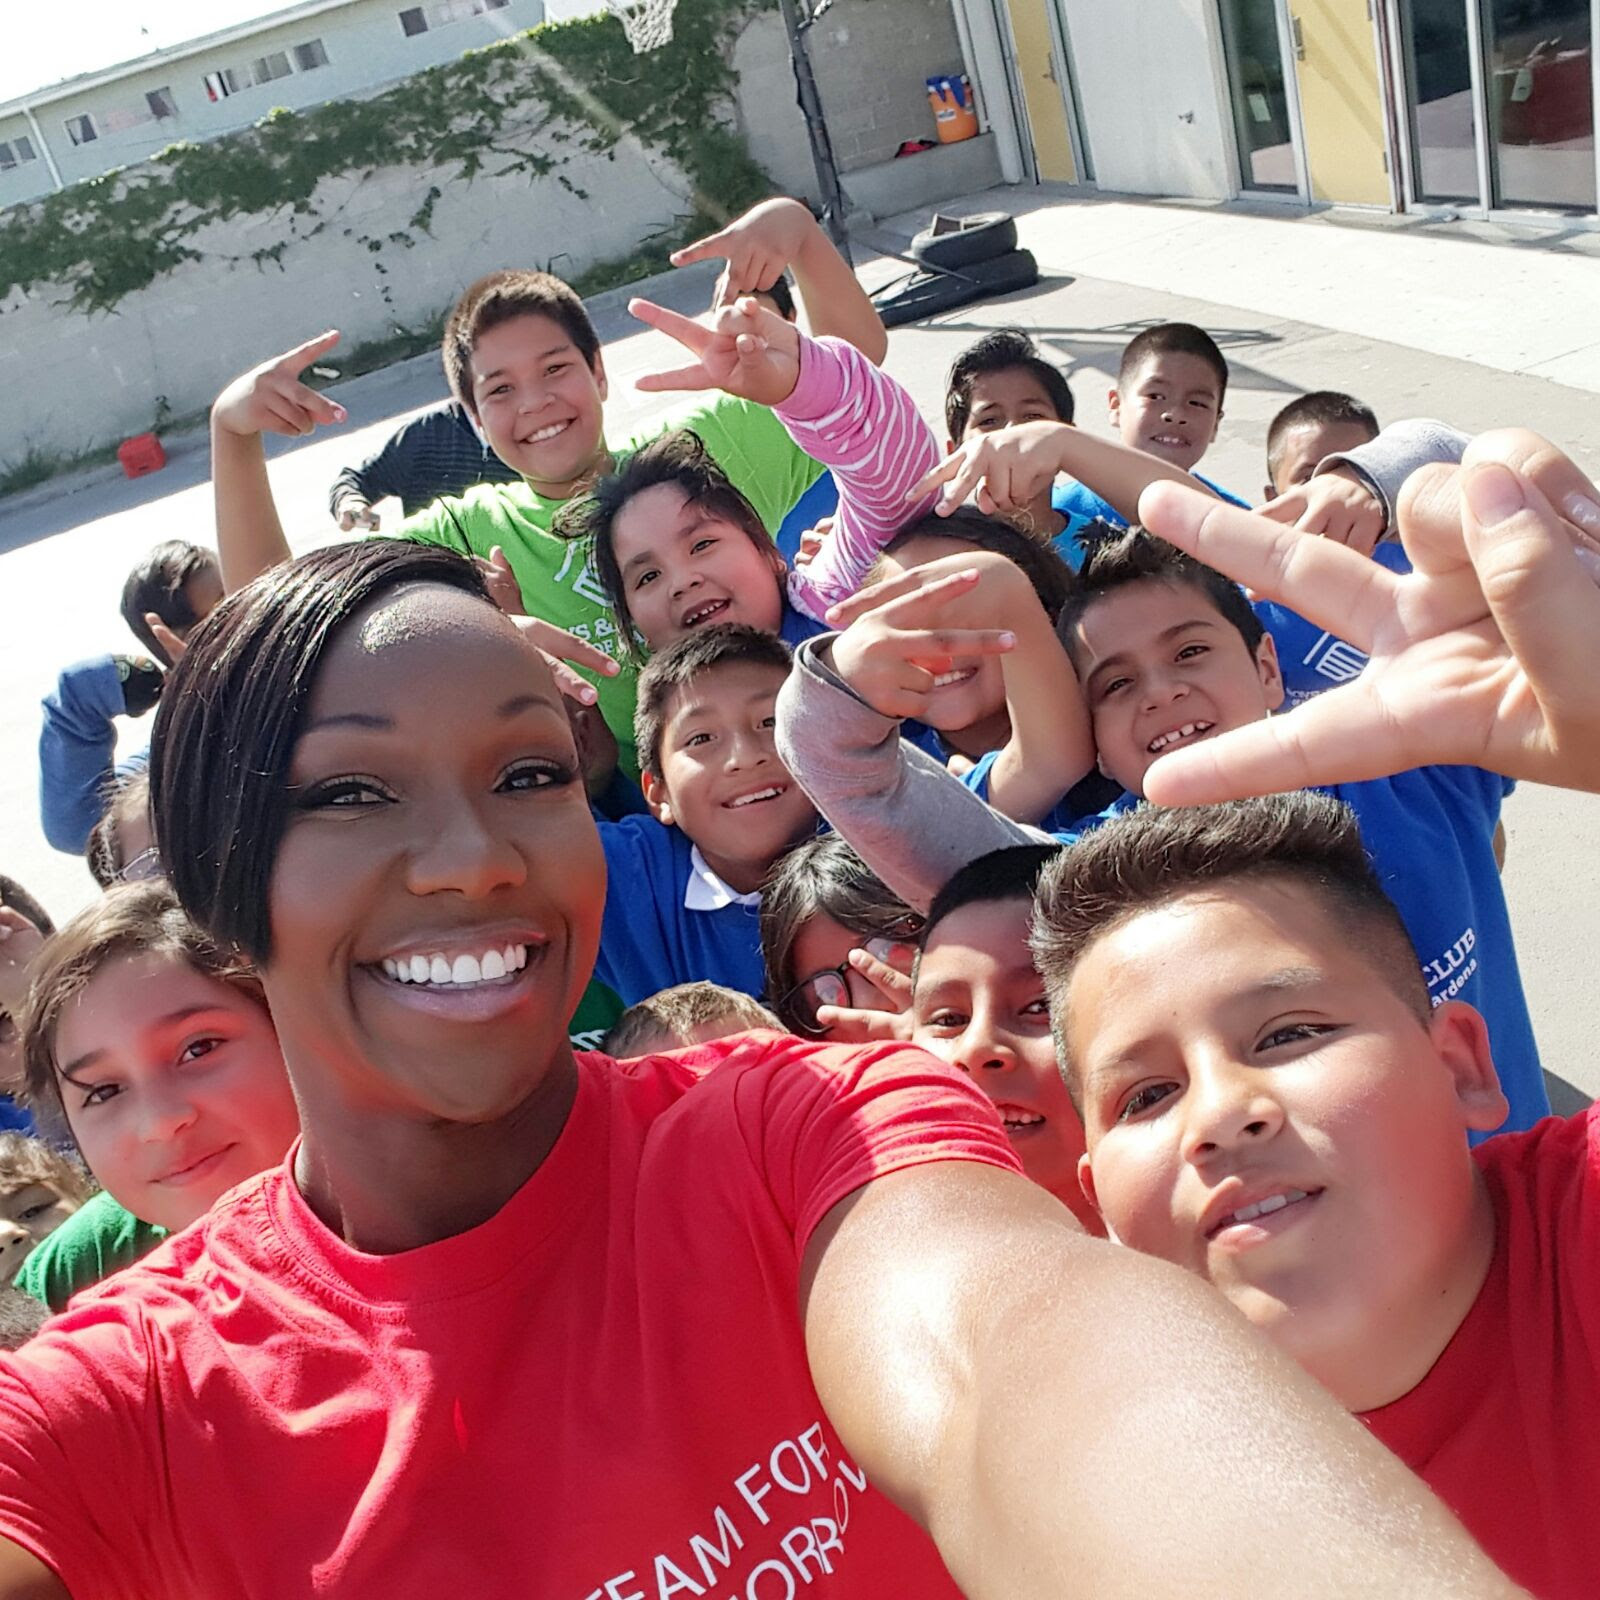 carmelita jeter, fastest woman alive, the jet, boys and girls club